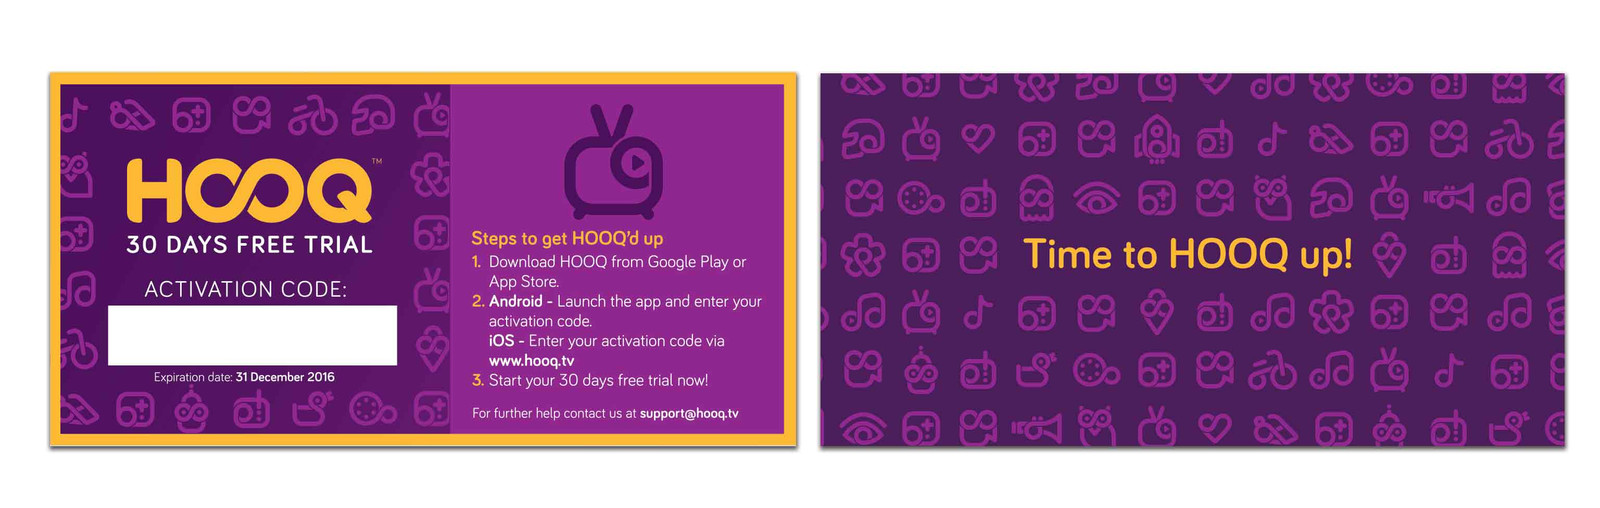 home | HOOQ marketing promotion items